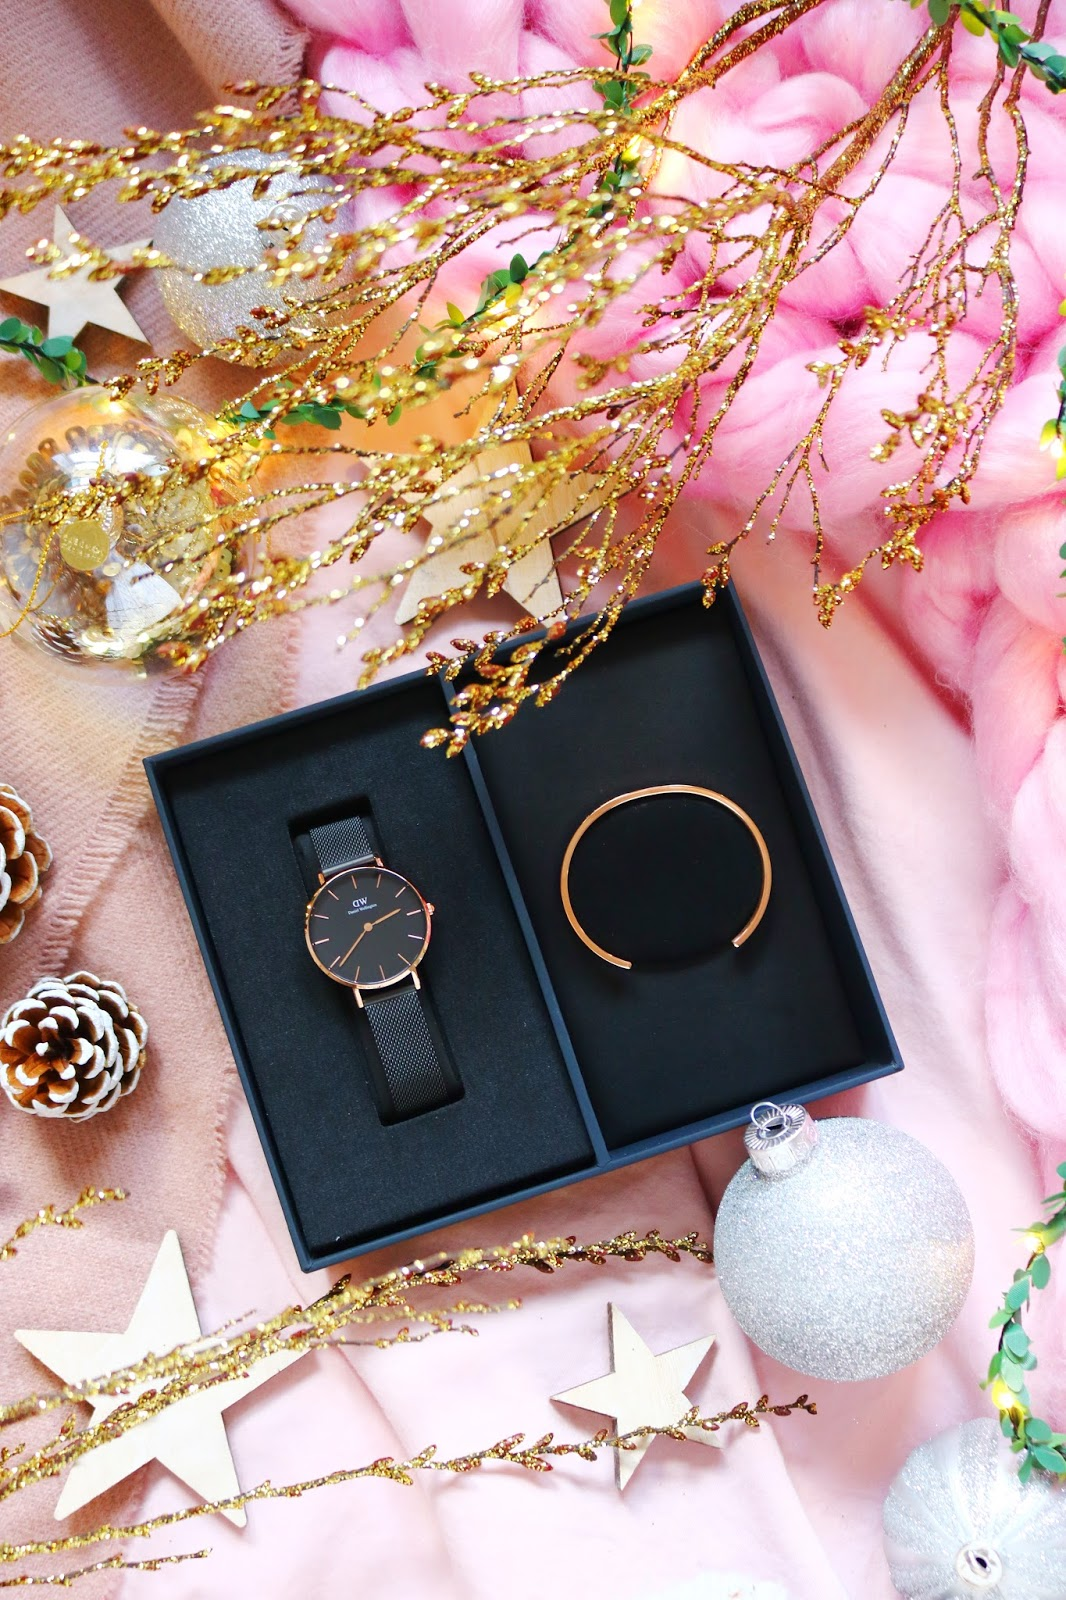 Luxury Gifts Ideas For Her ft. Daniel Wellington